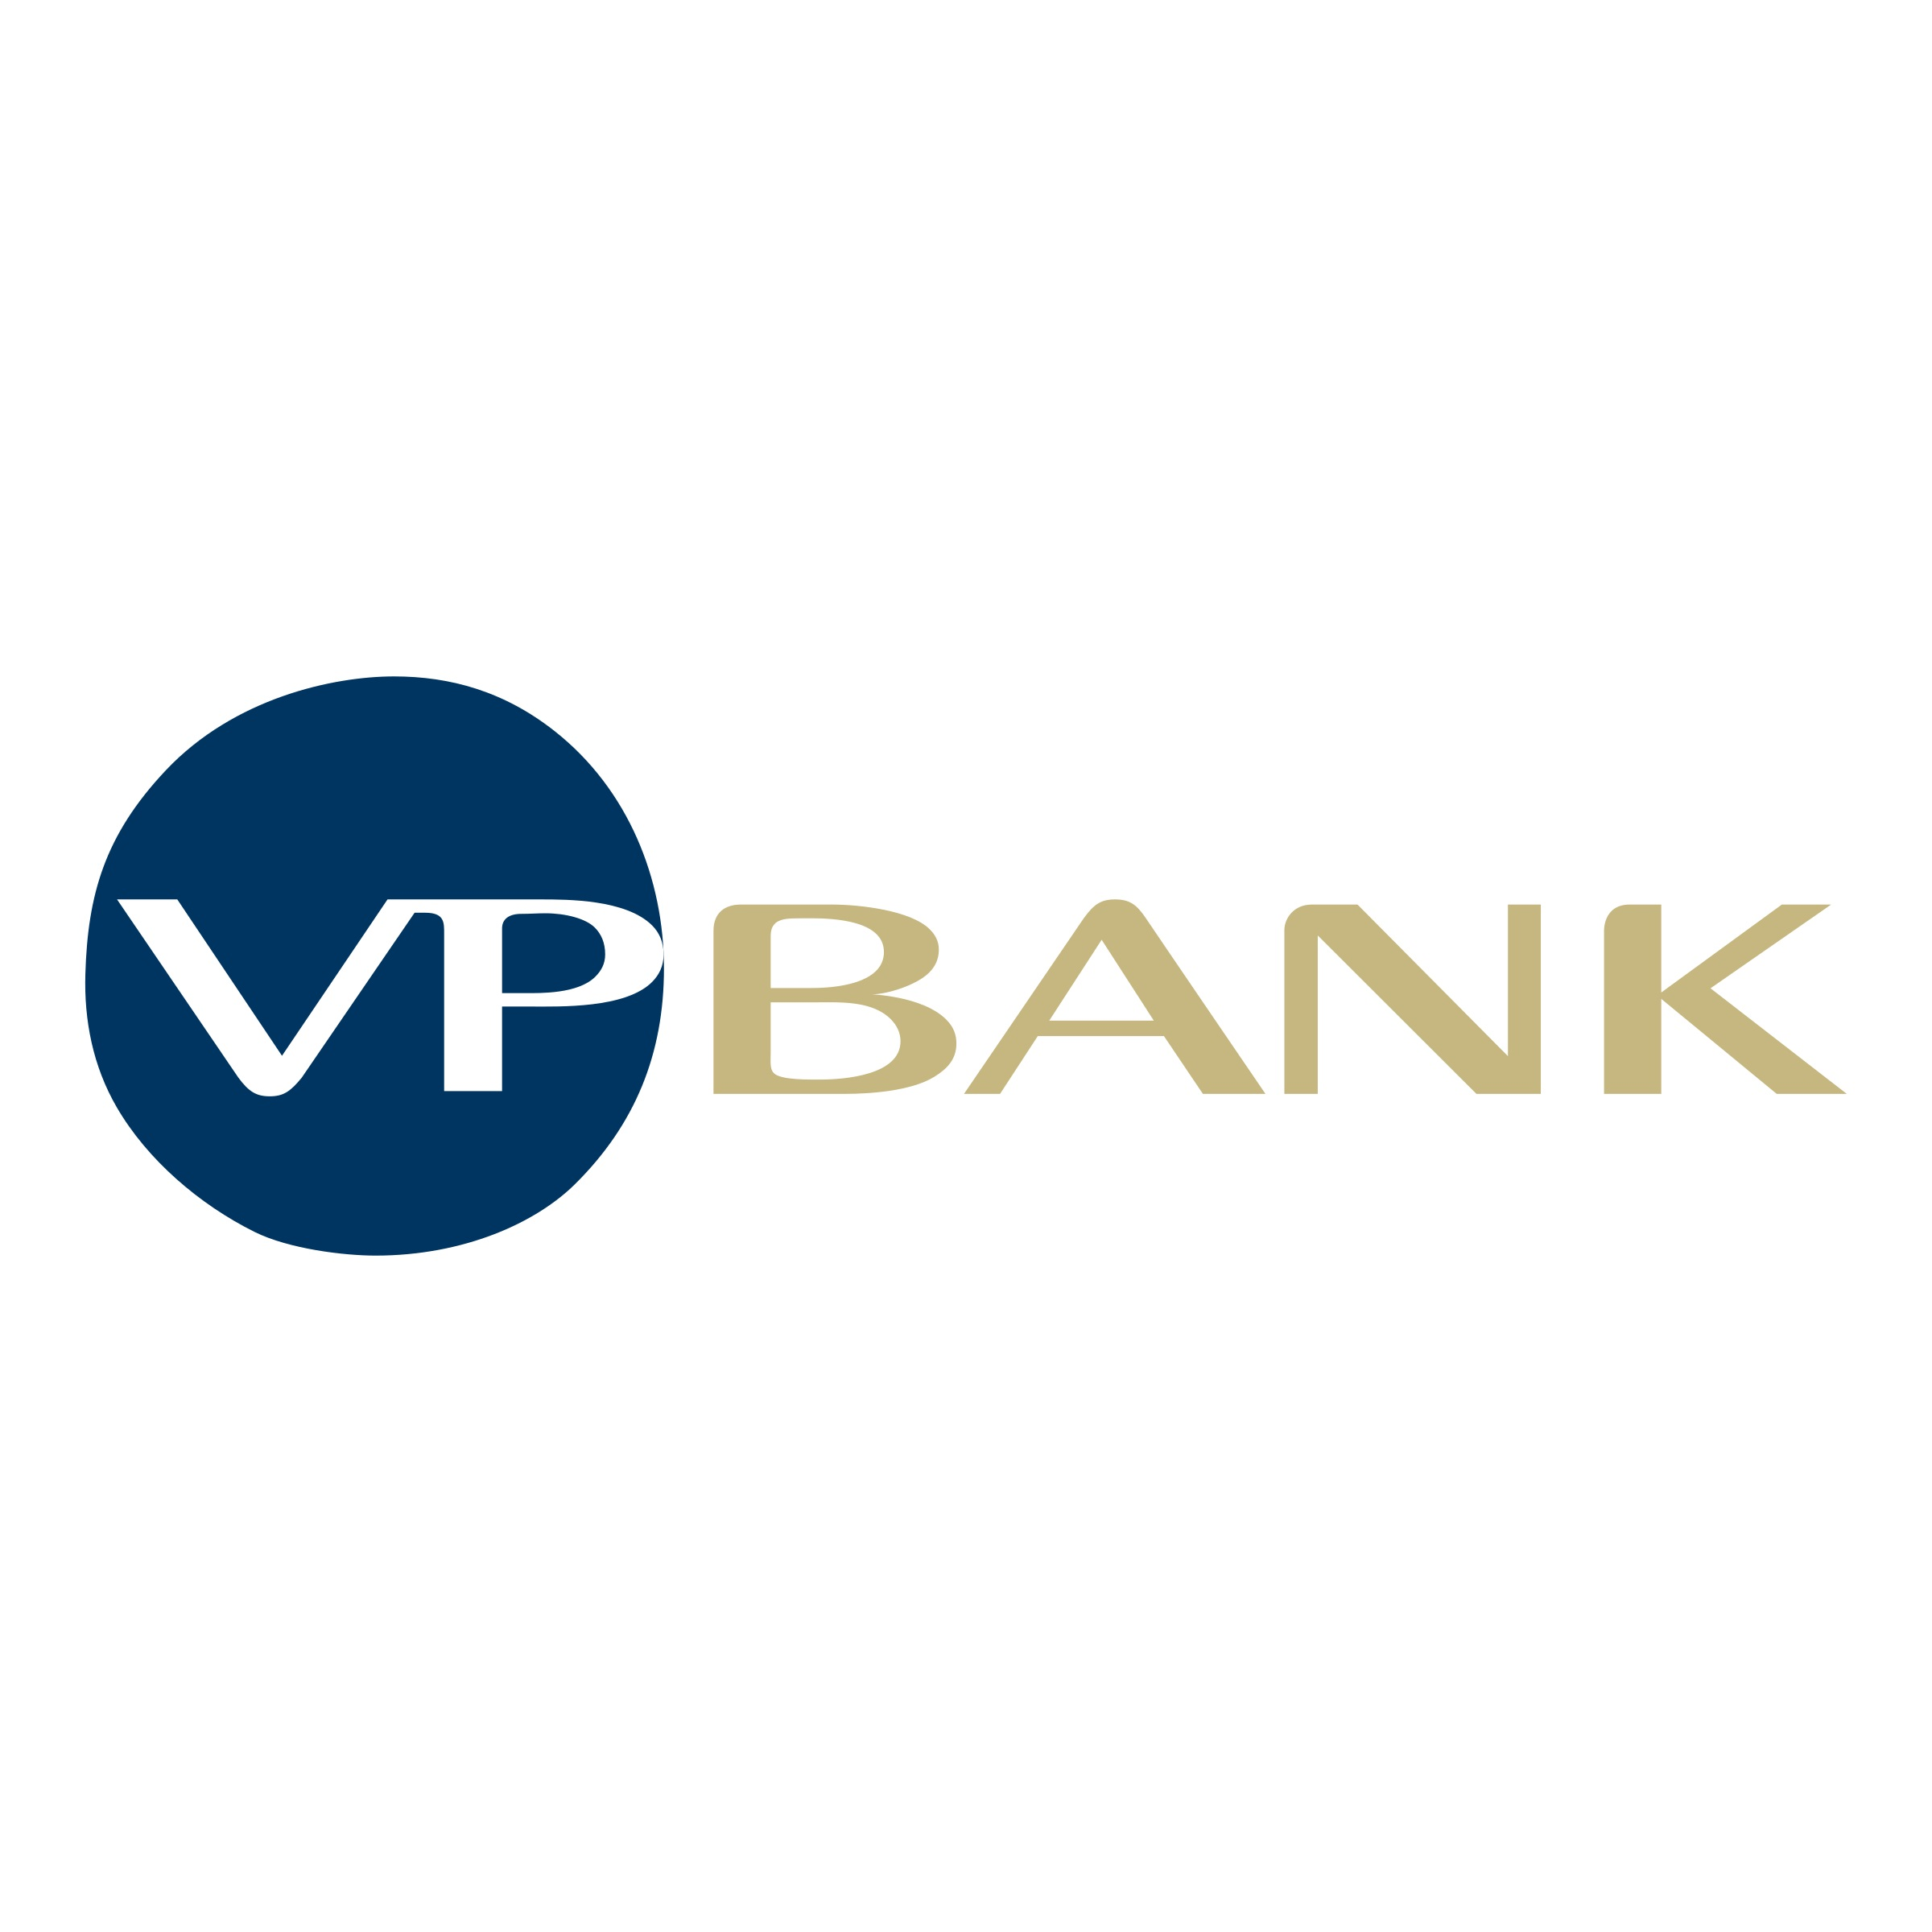 VP Bank Announces Organisational Updates and New Appointments in Asia